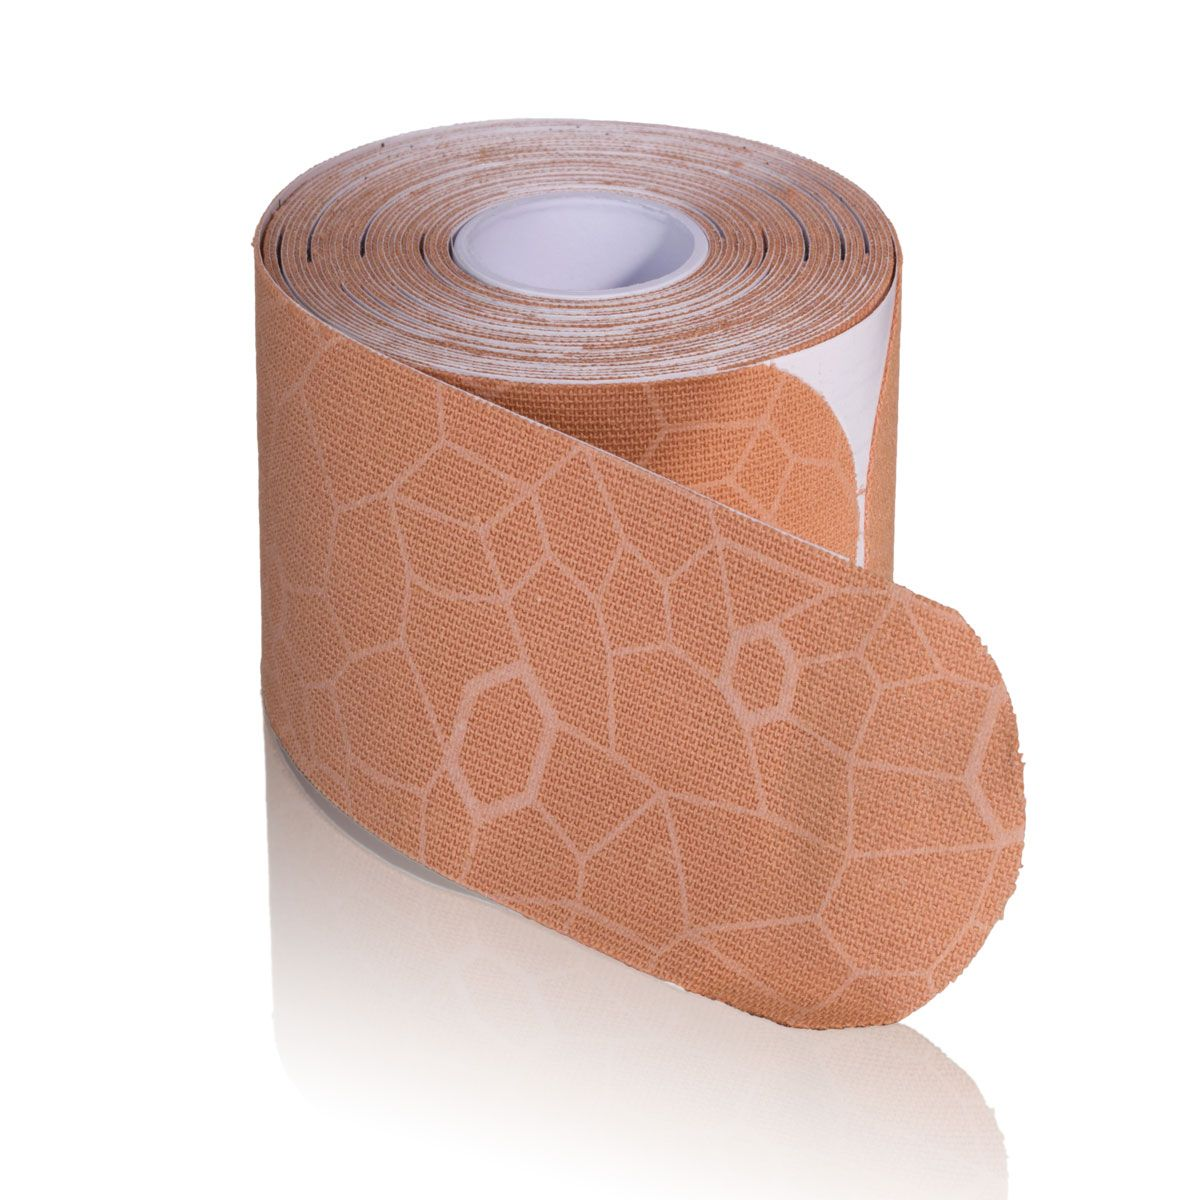 TheraBand Kinesiology Tape, 20 pack, 2 in x 10 in, Beige/Beige